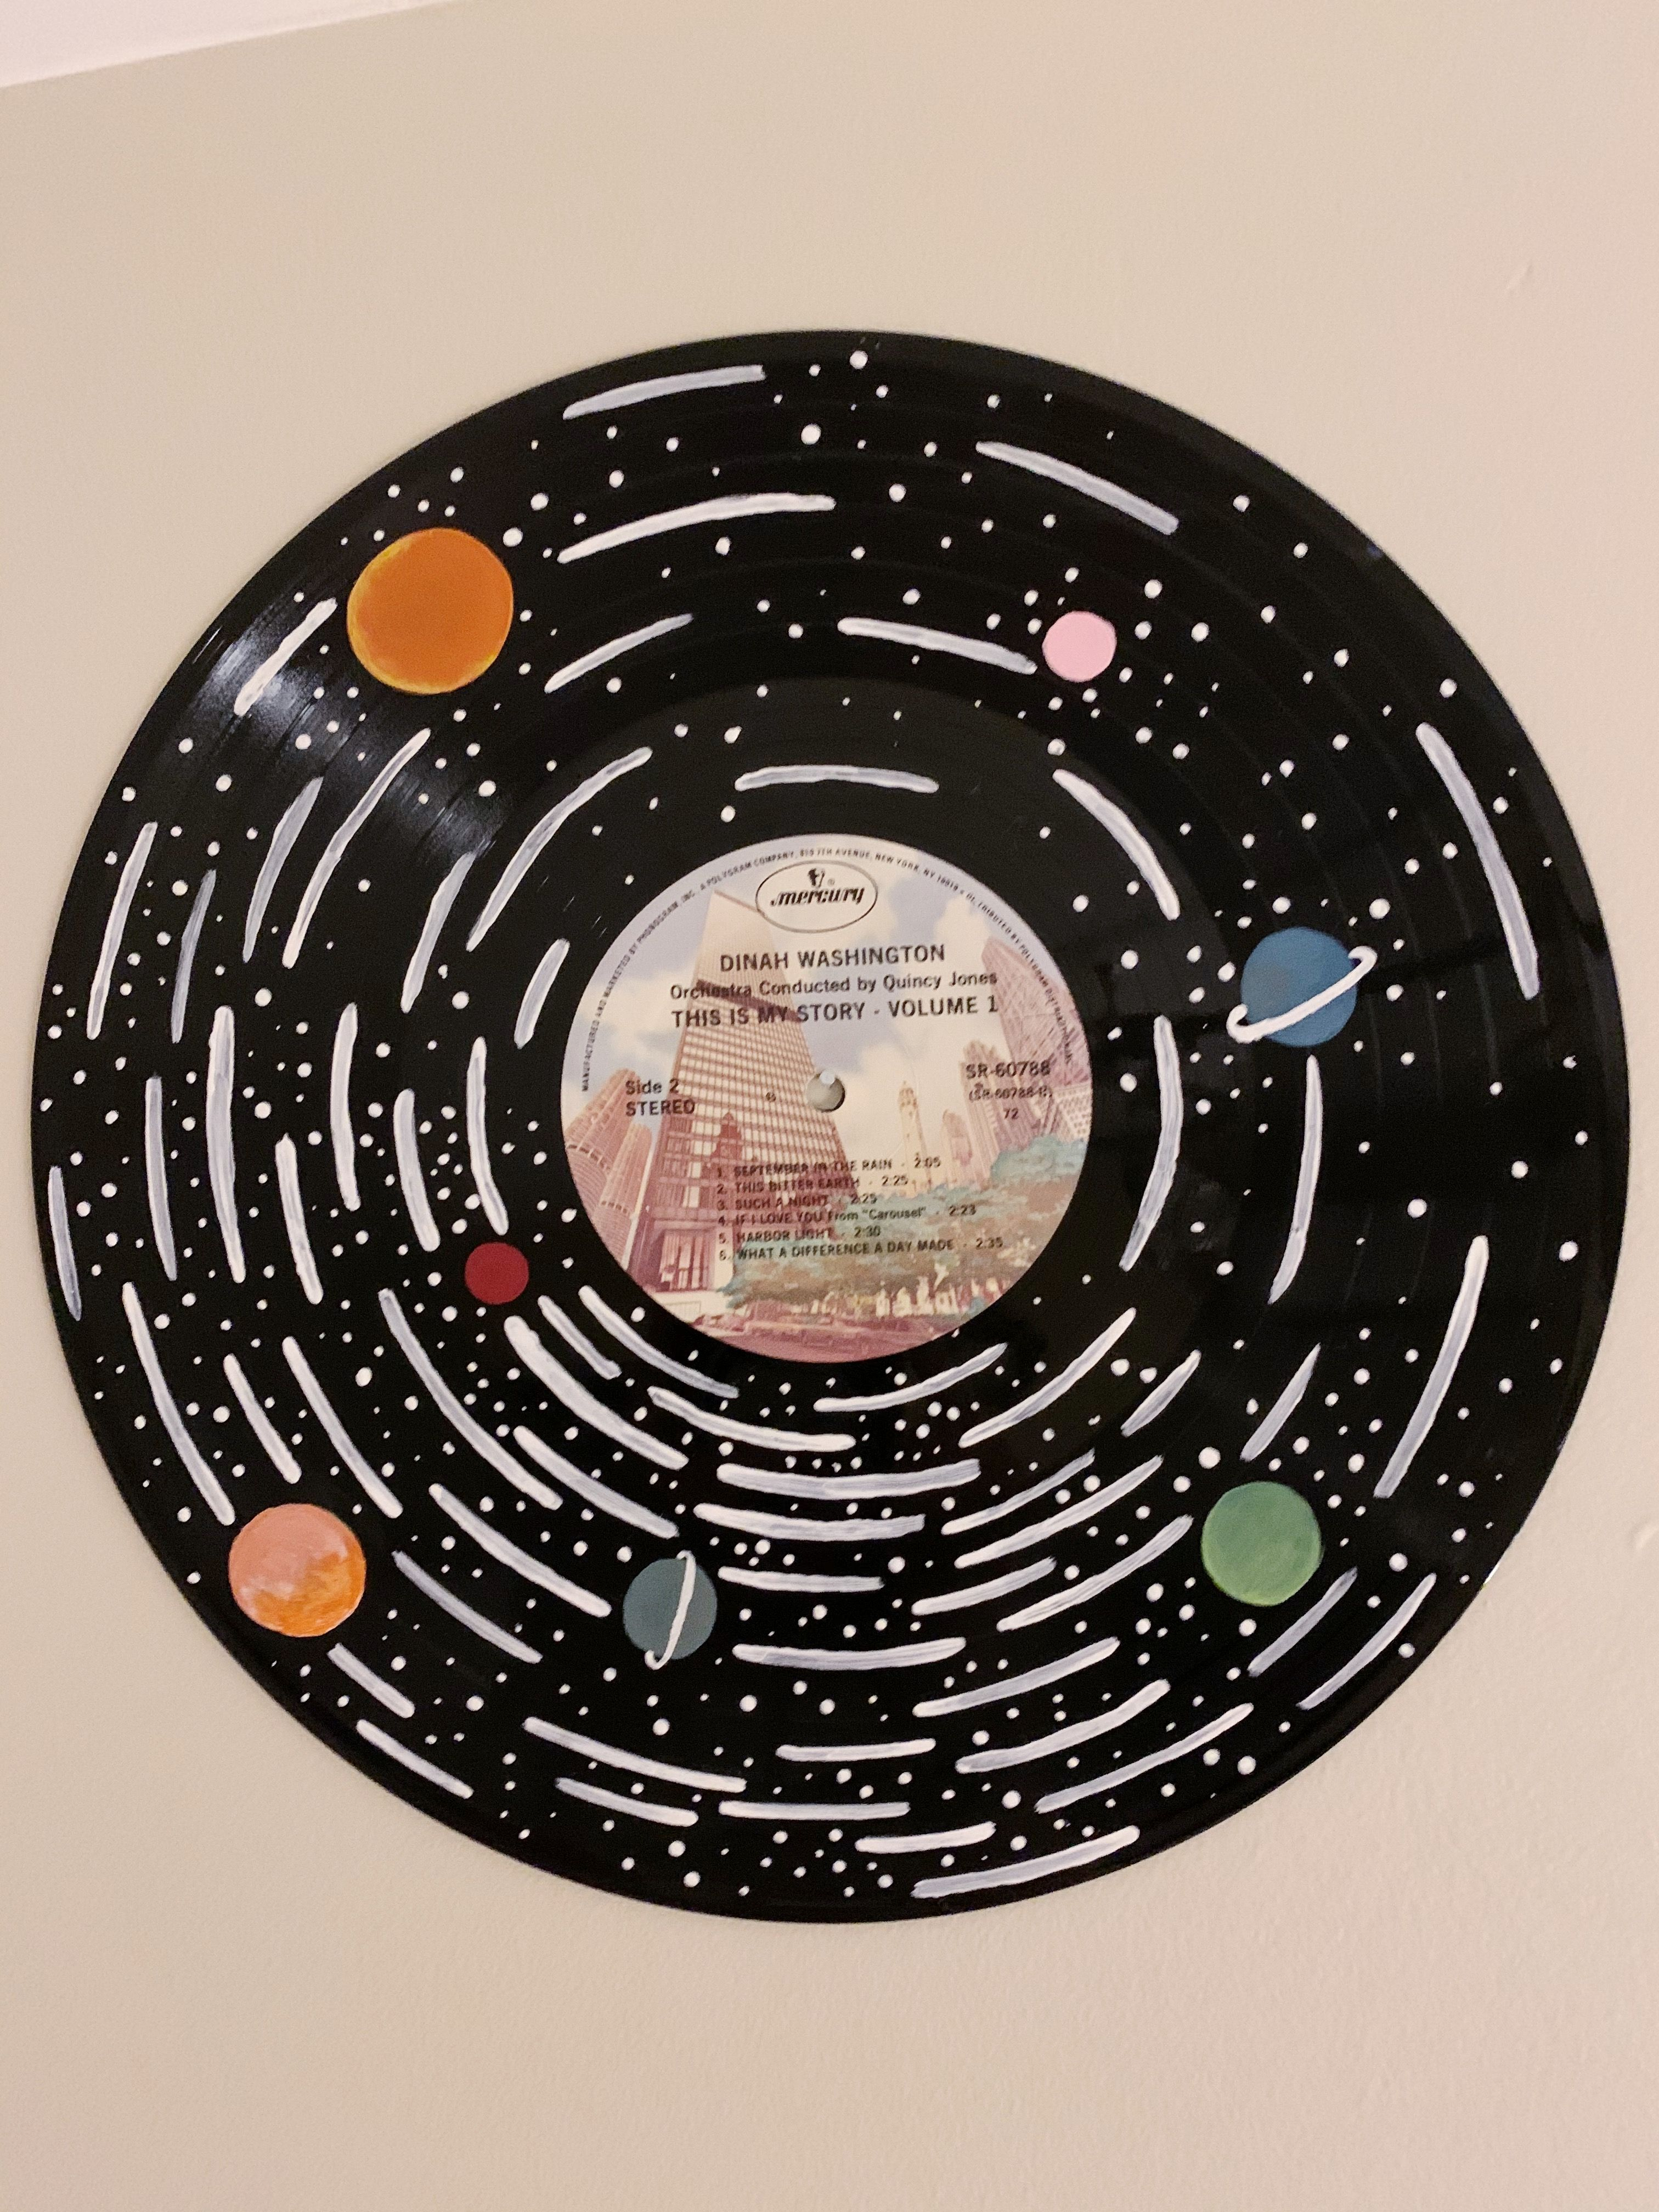 Diy Painted Record In 2020 Vinyl Record Art Solar System Painting Record Wall Art